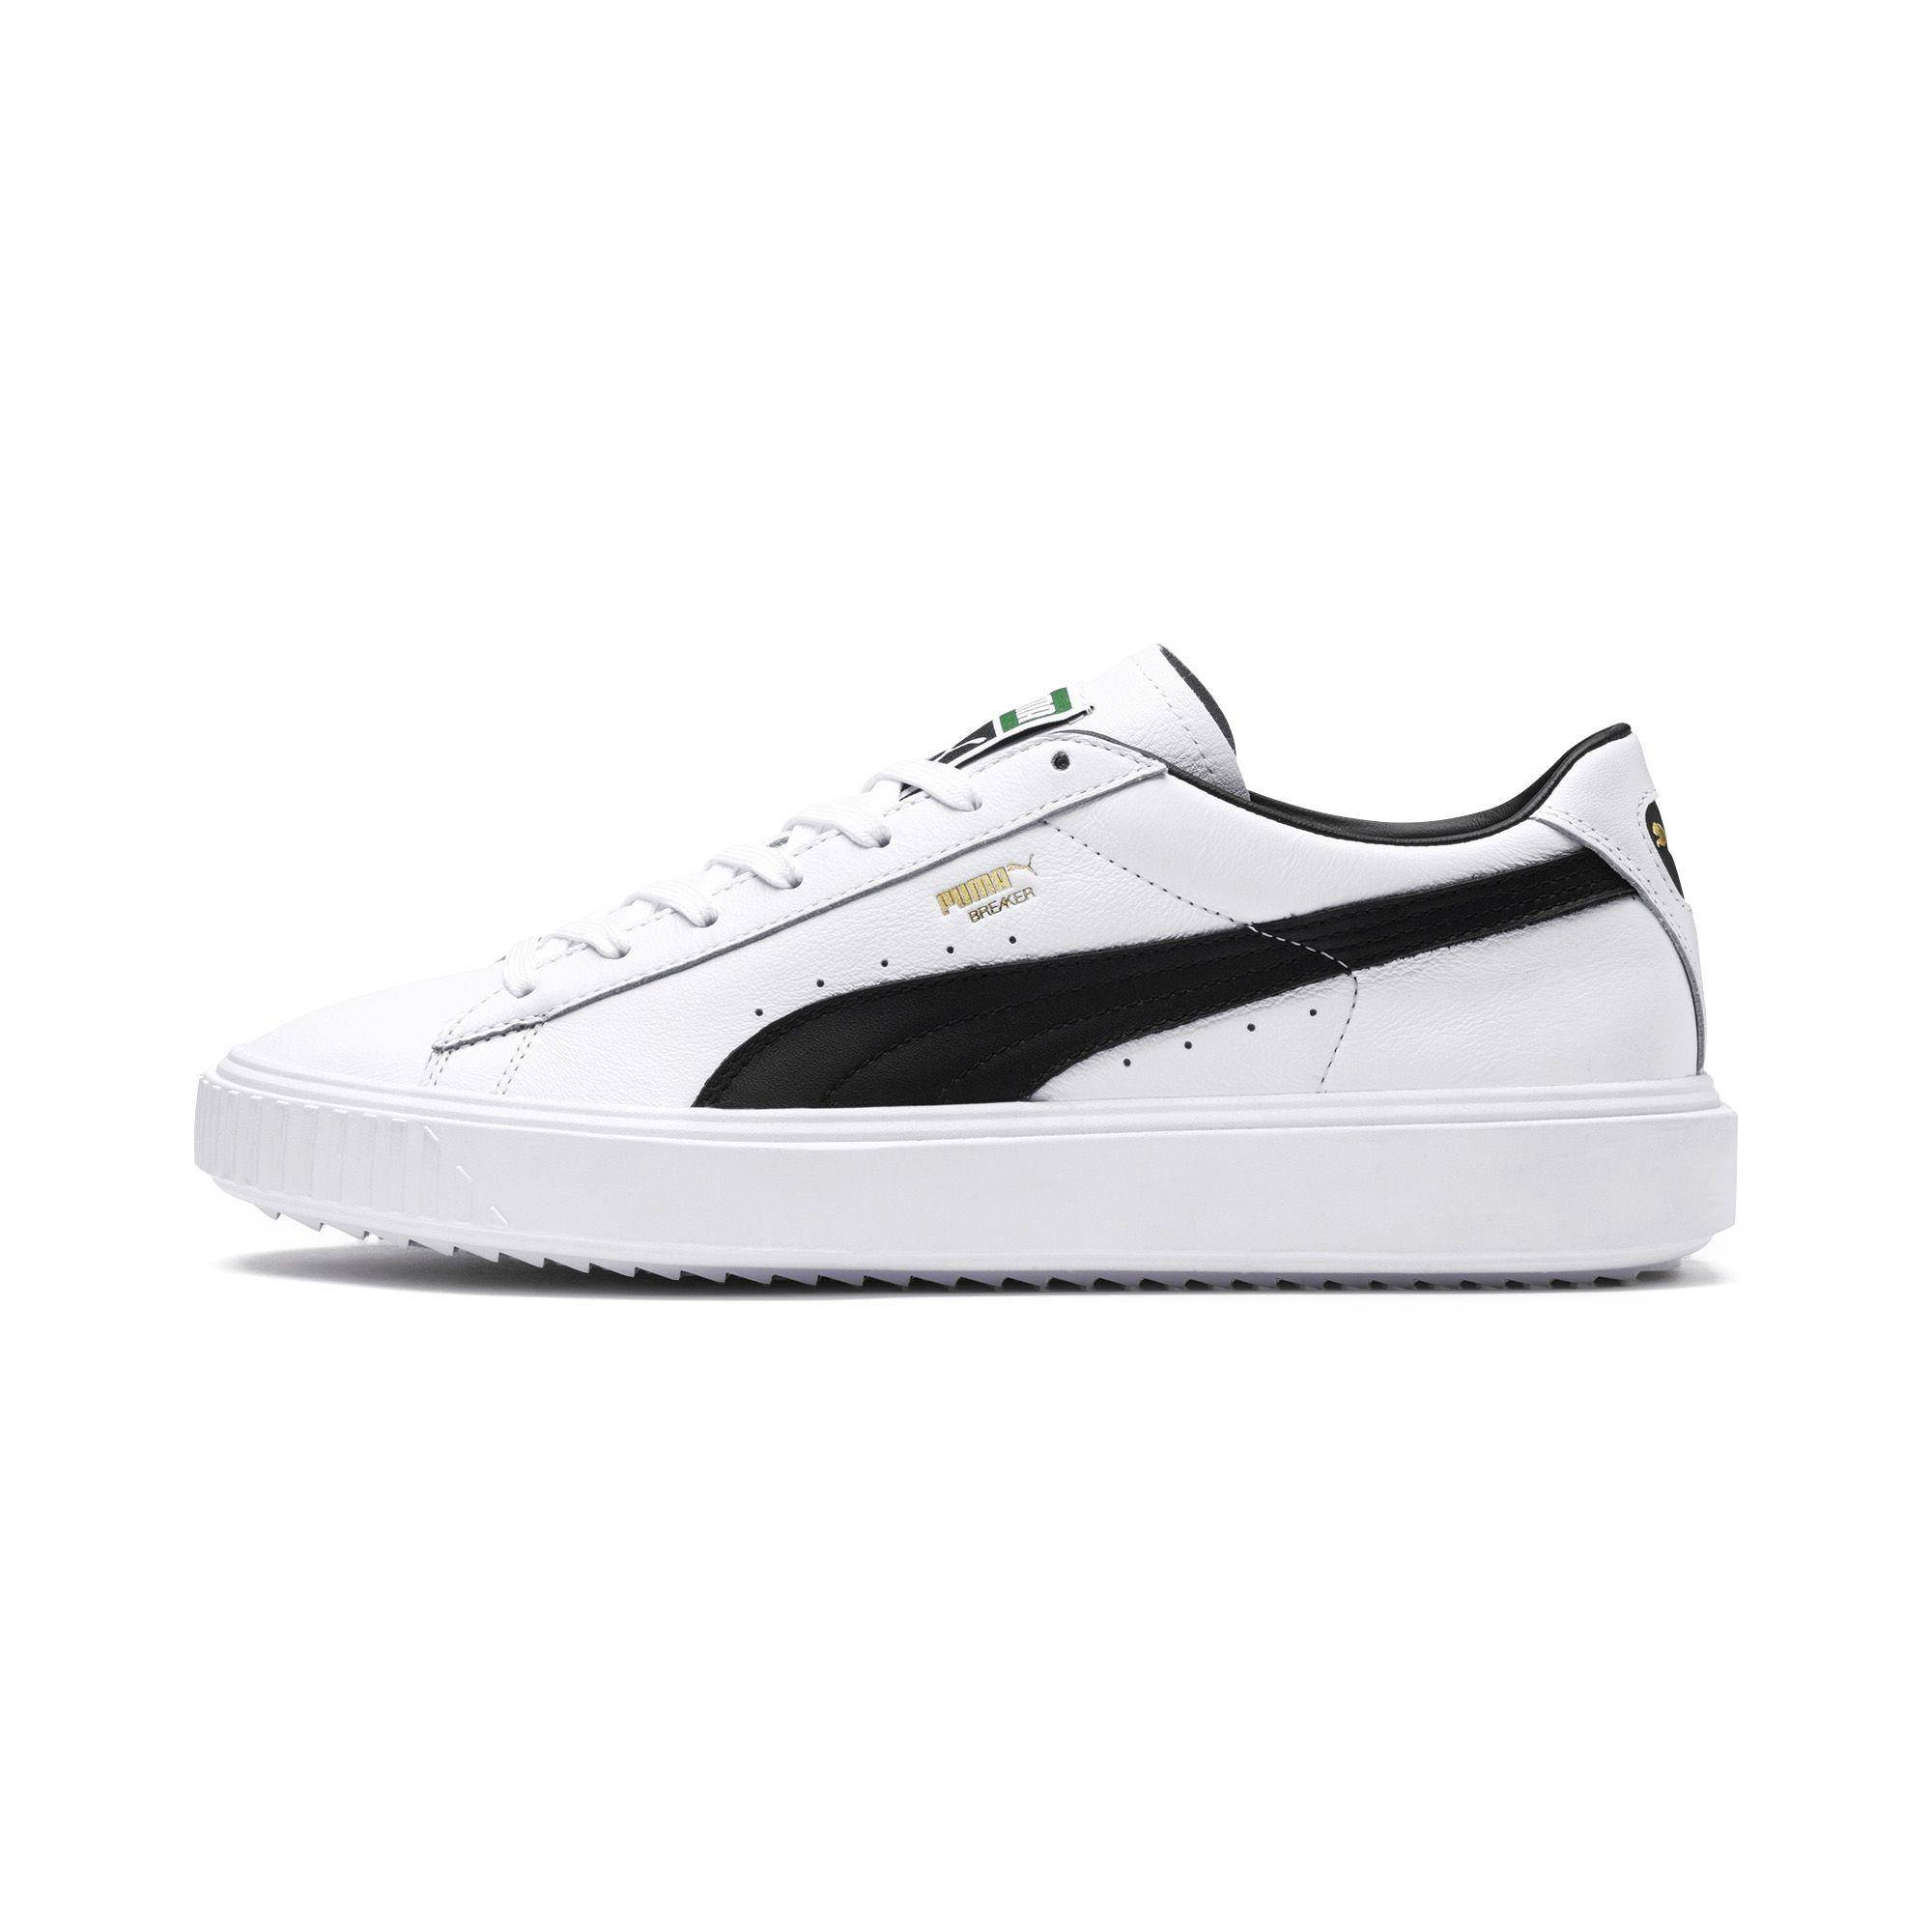 Puma Breaker Leather Puma    18/19